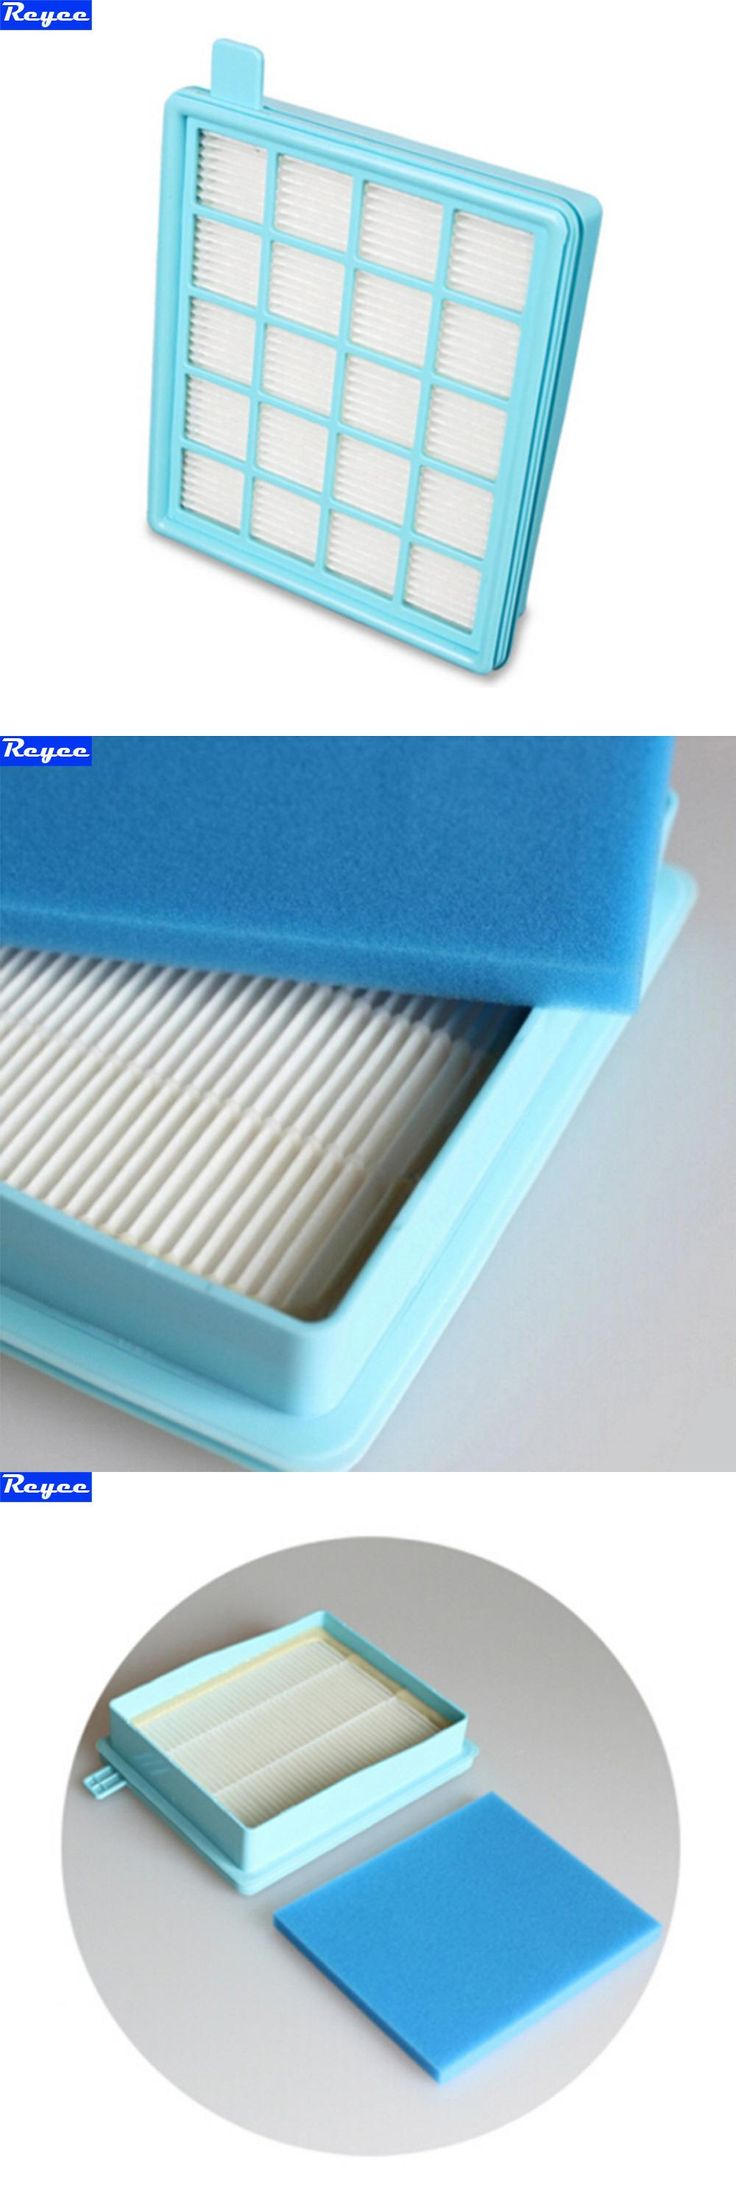 [Visit to Buy] New 1 Replacement HEPA Filter for Philips FC8470 Air Outlet Filter for FC8476 FC8473 FC8477 FC8633 FC8634 FC8645 Vacuum Cleaners #Advertisement